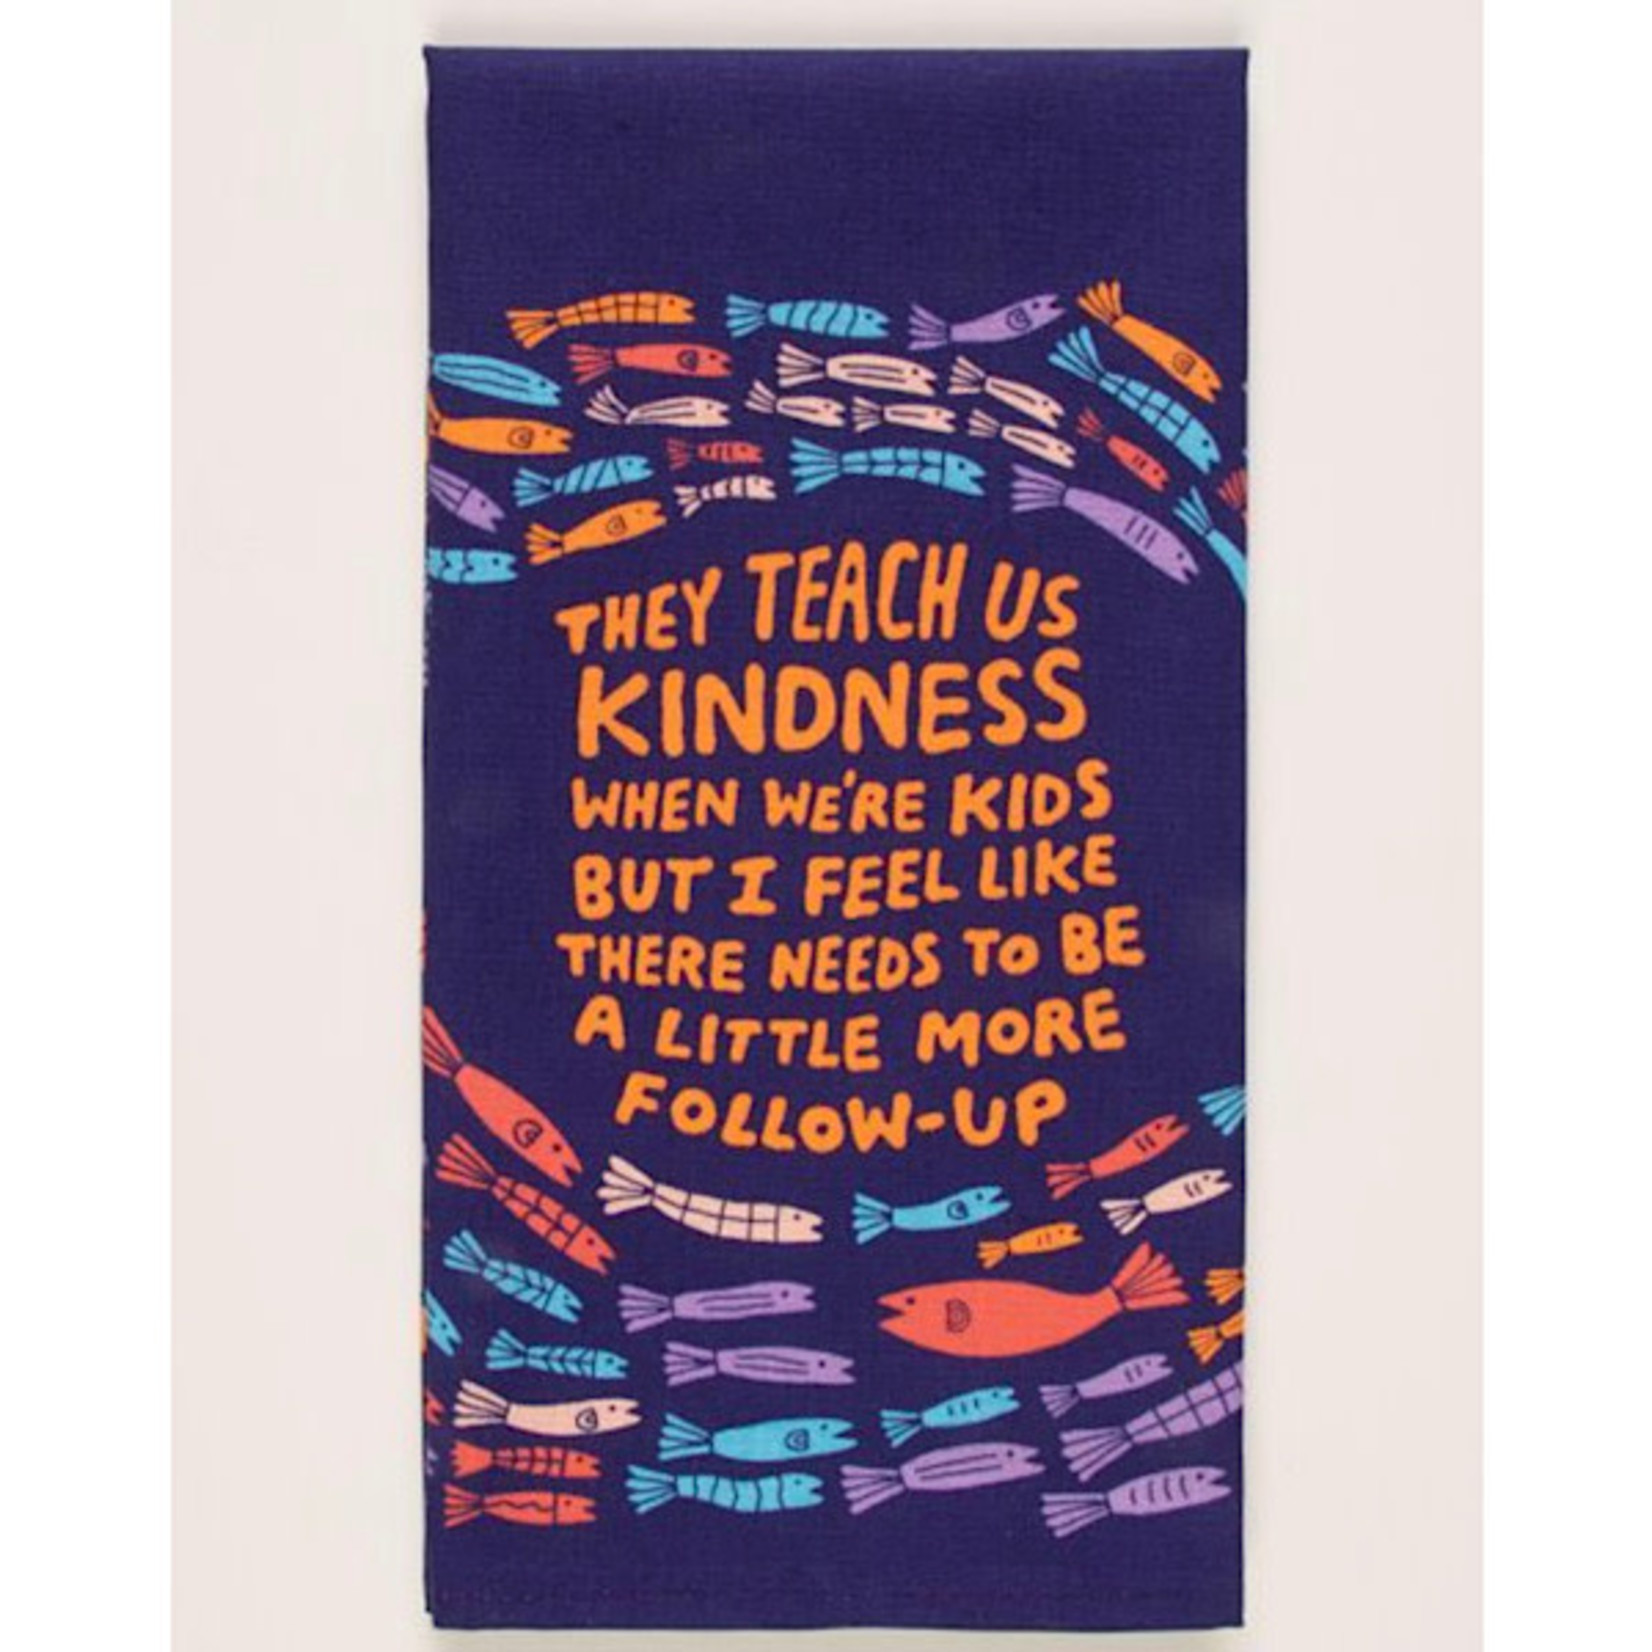 Dish Towel - They Teach Kindness But There Needs More Follow Up